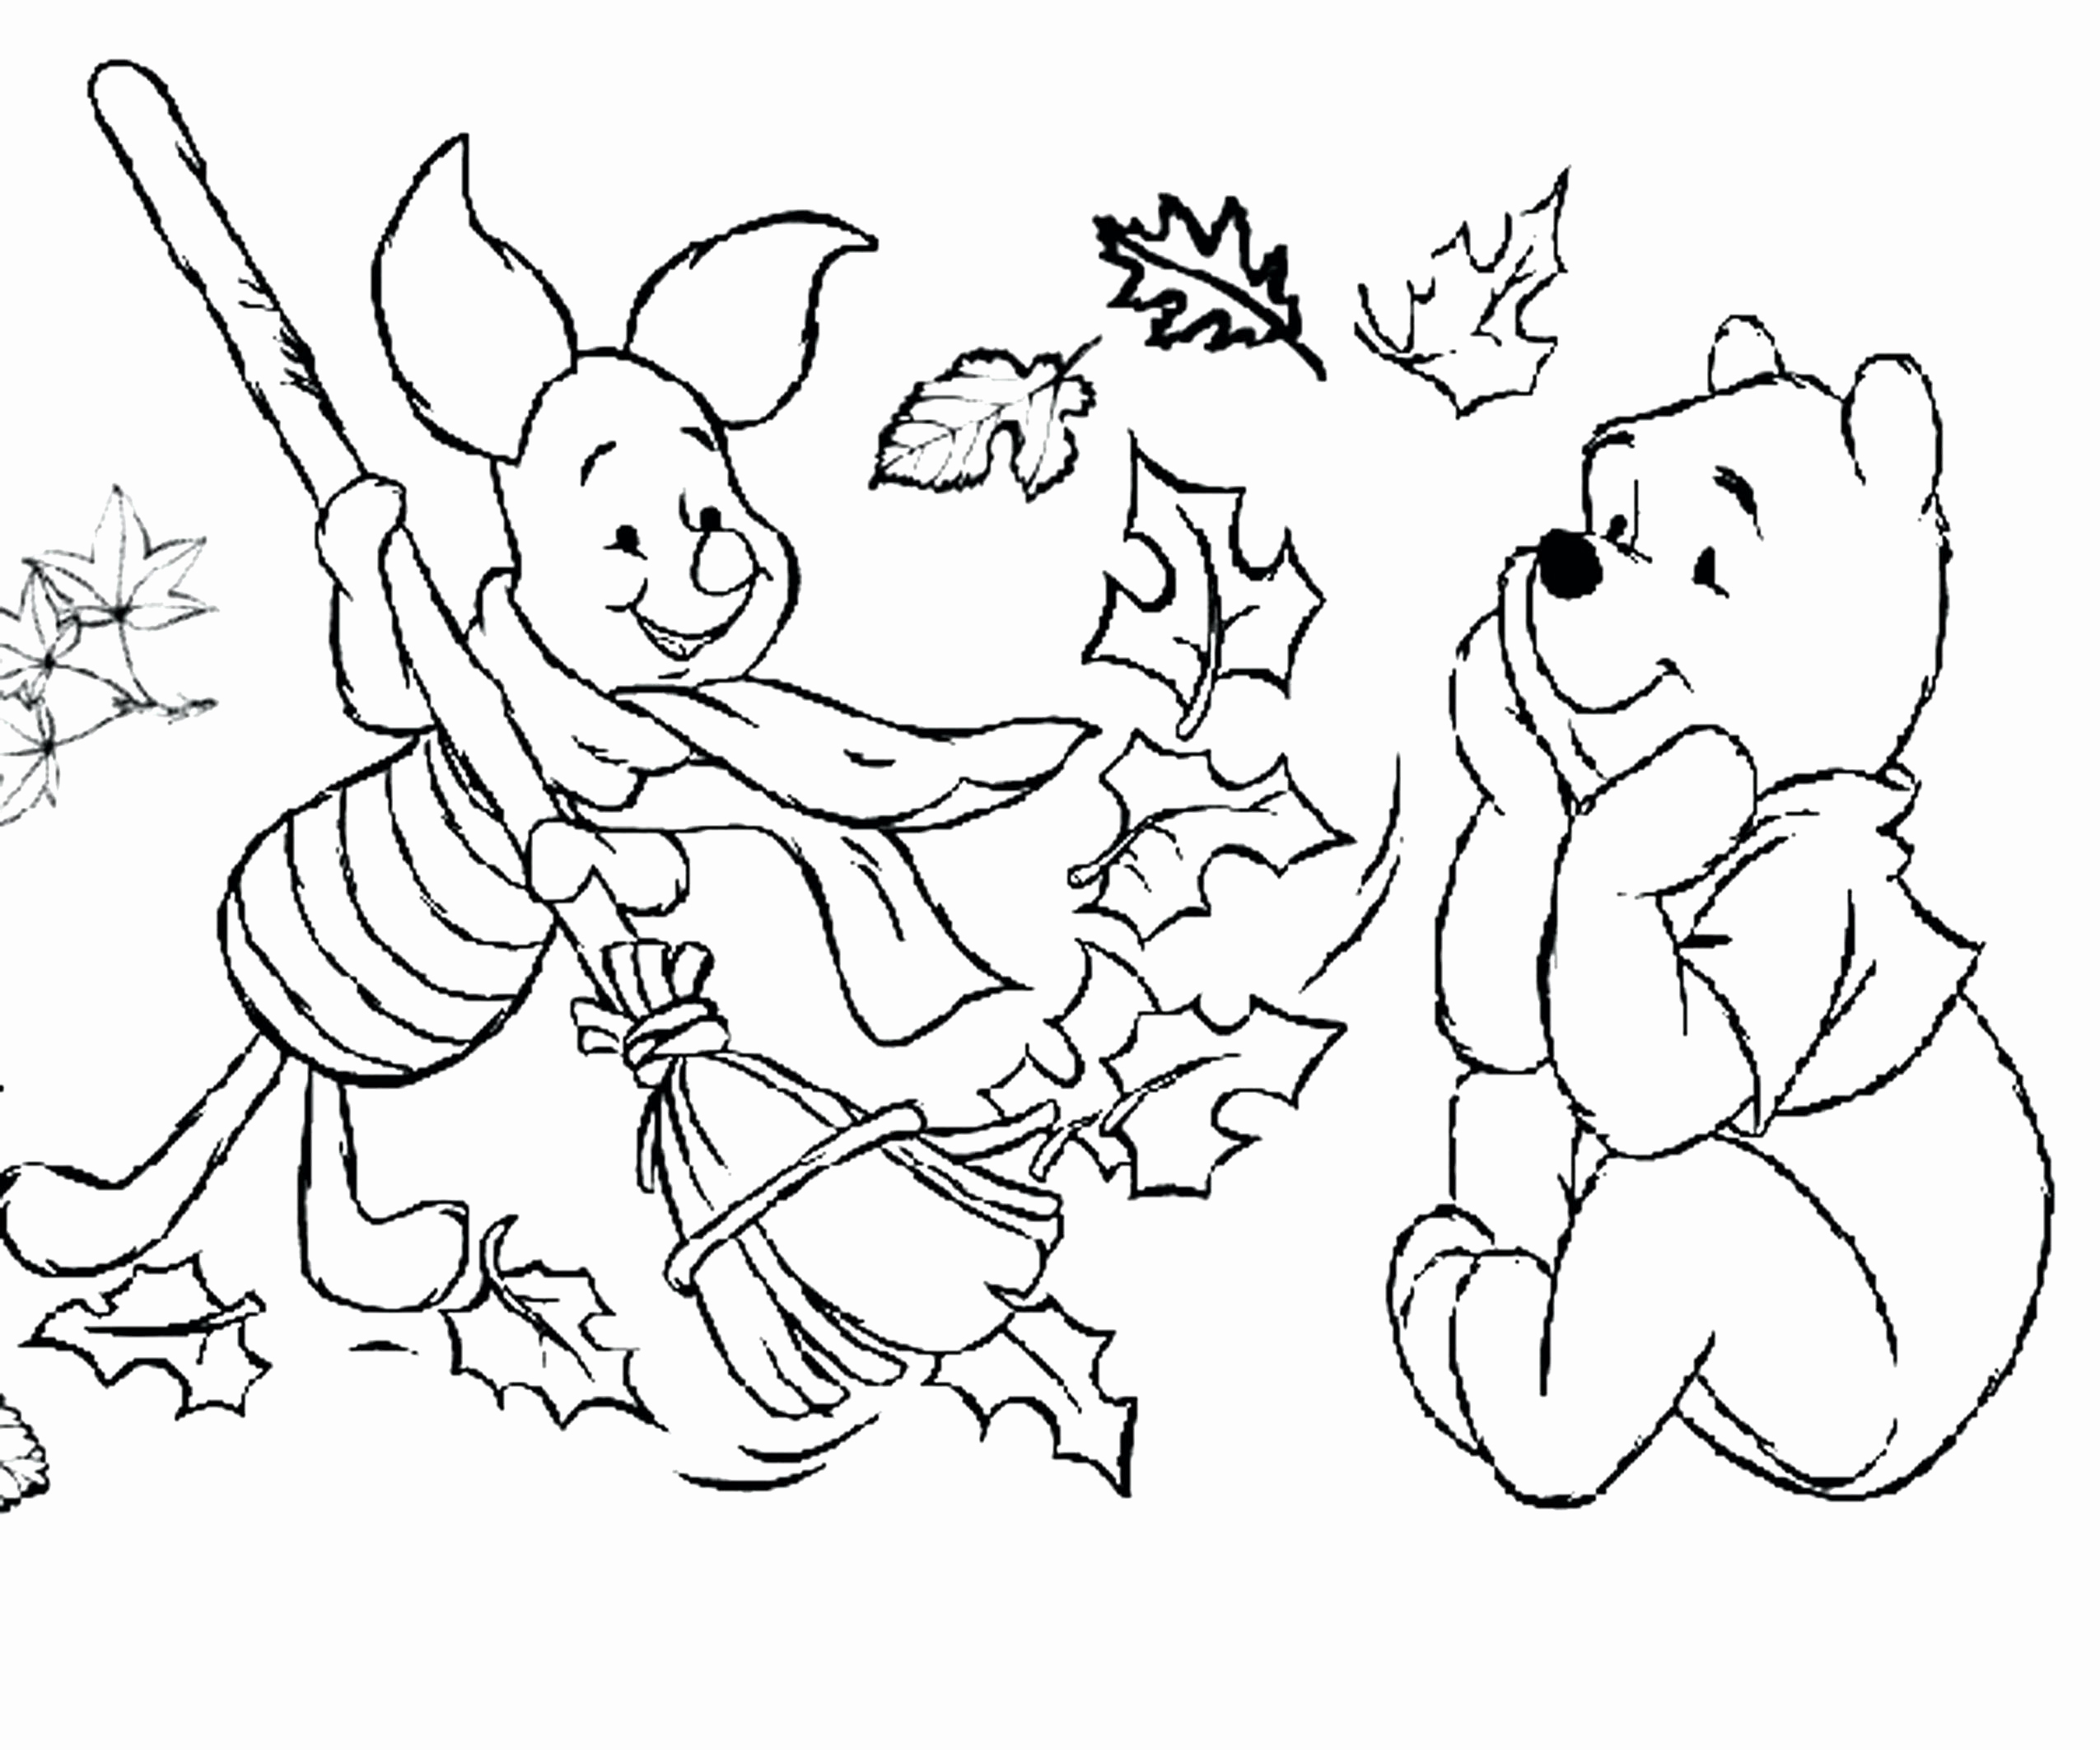 kachina coloring pages Collection-Coloring Pages Angel Abc Tracing Coloring Pages 12-f